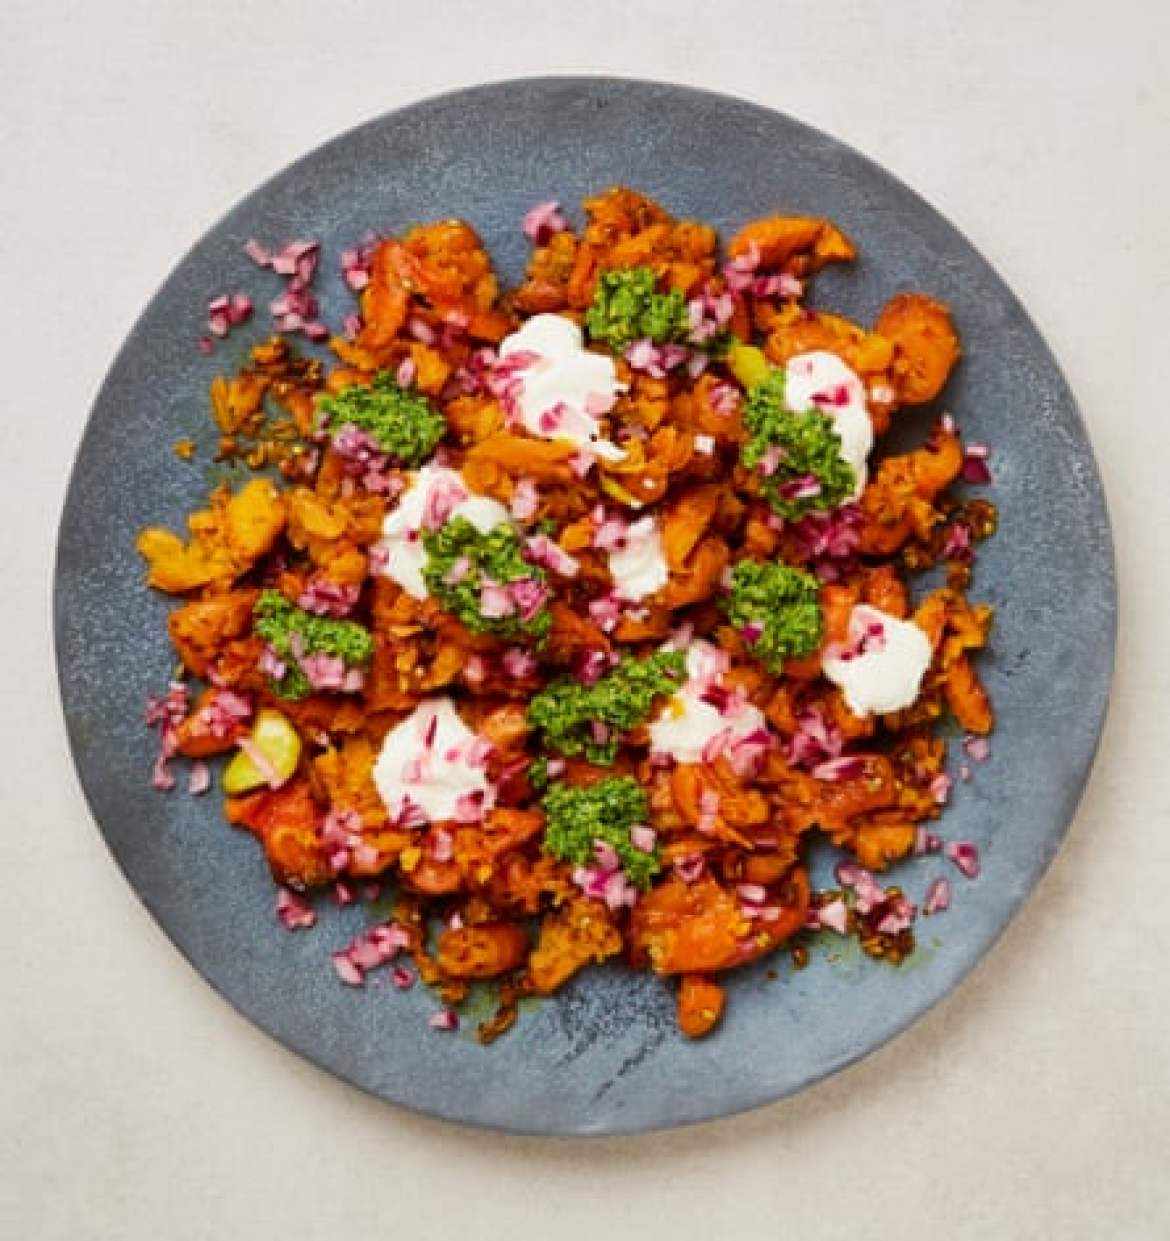 Yotam Ottolenghi's smashed carrots with coriander-pistachio pesto and pickled onions.